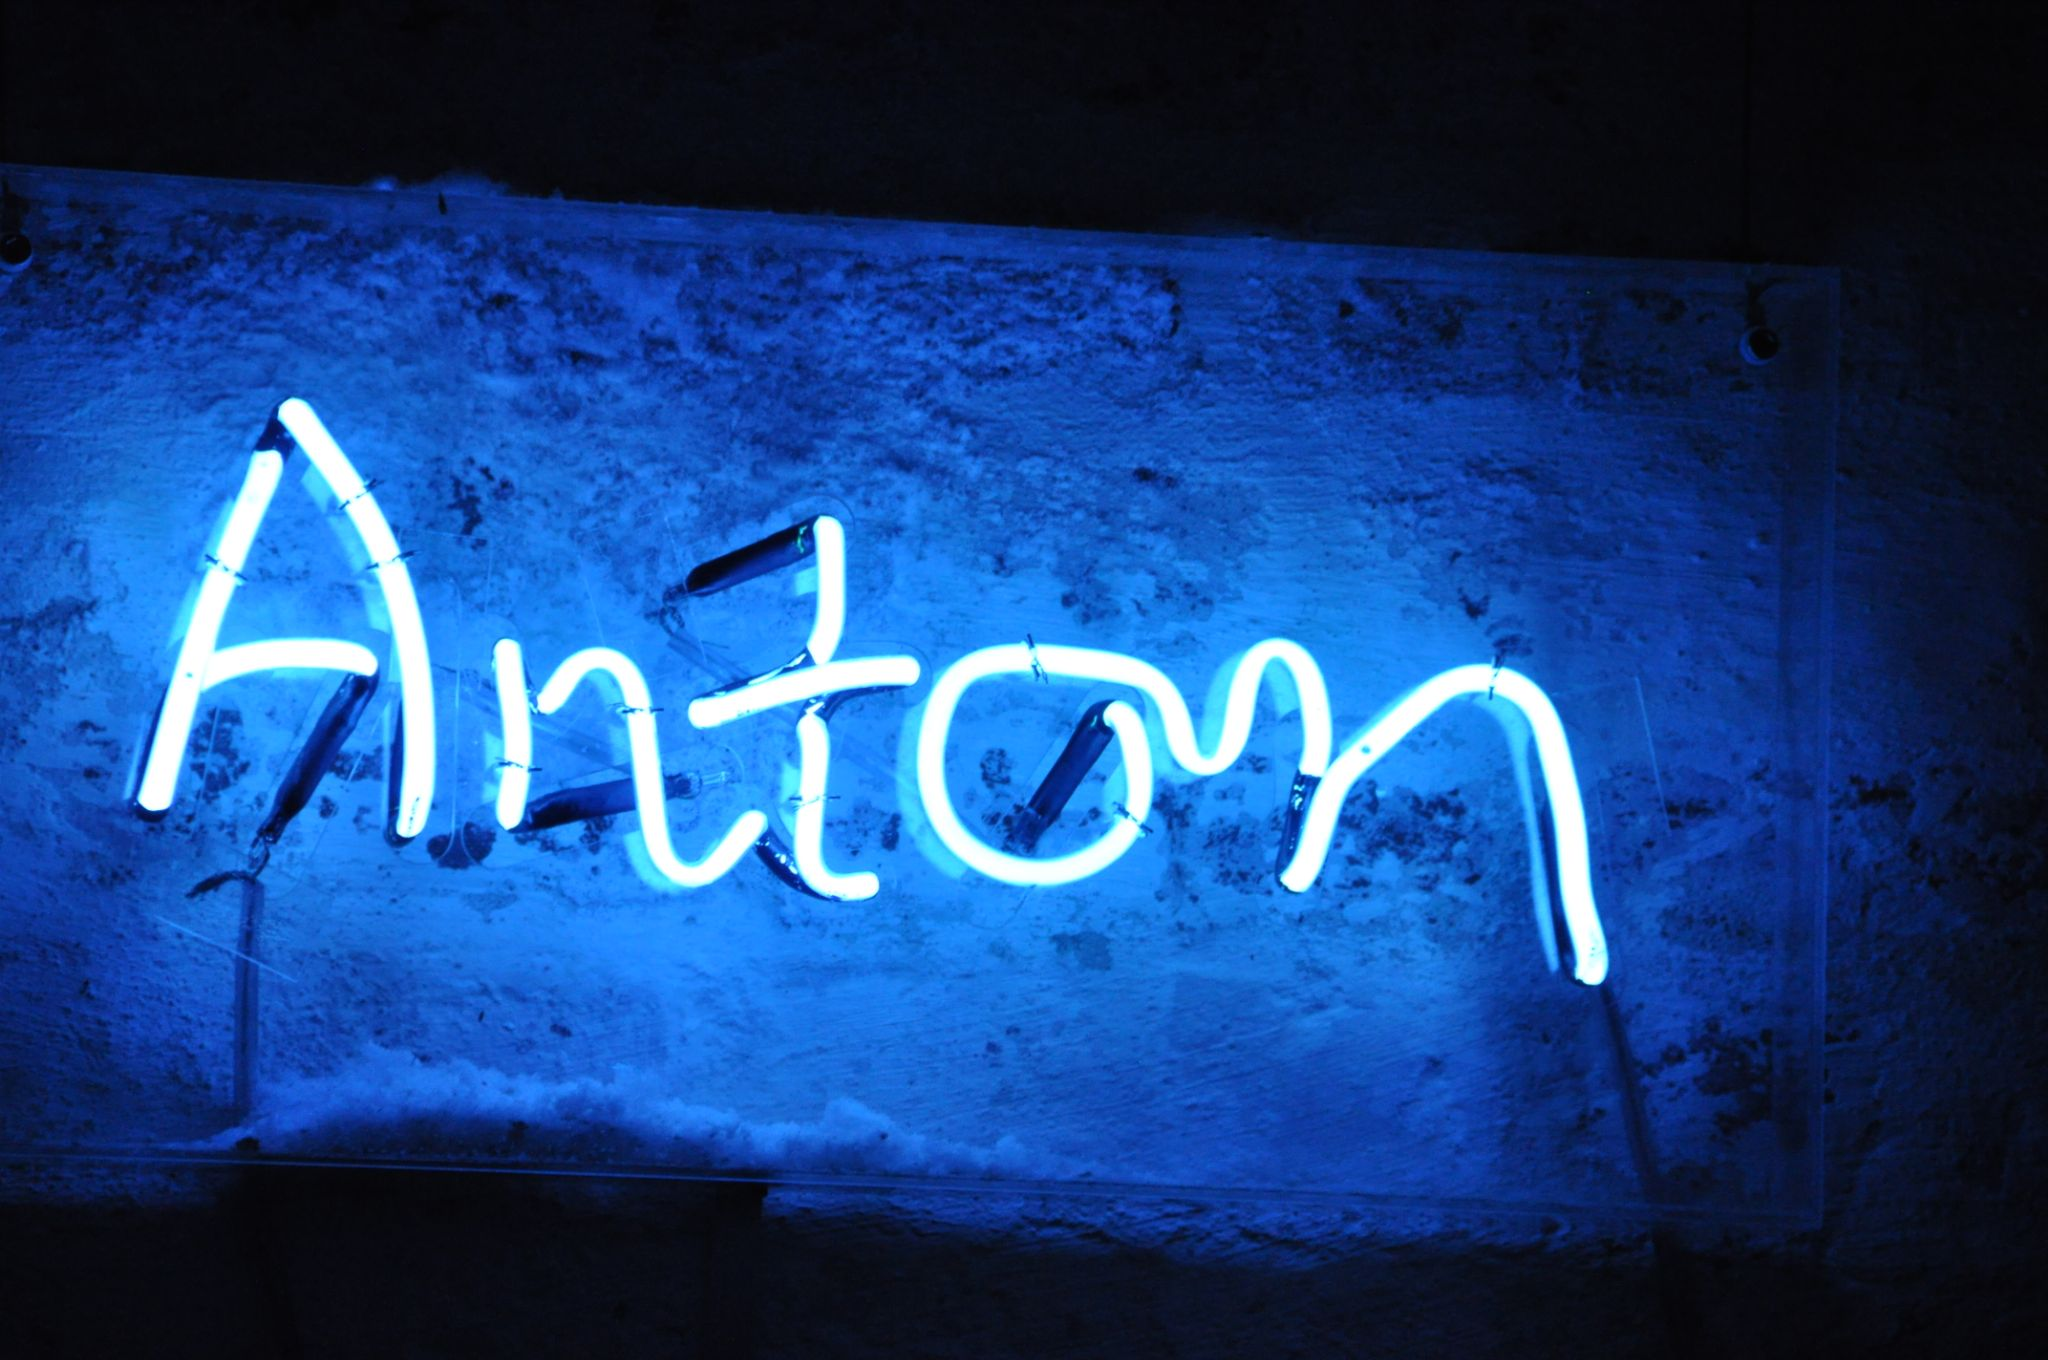 Anton makes the light in the picture by Get Out Photography